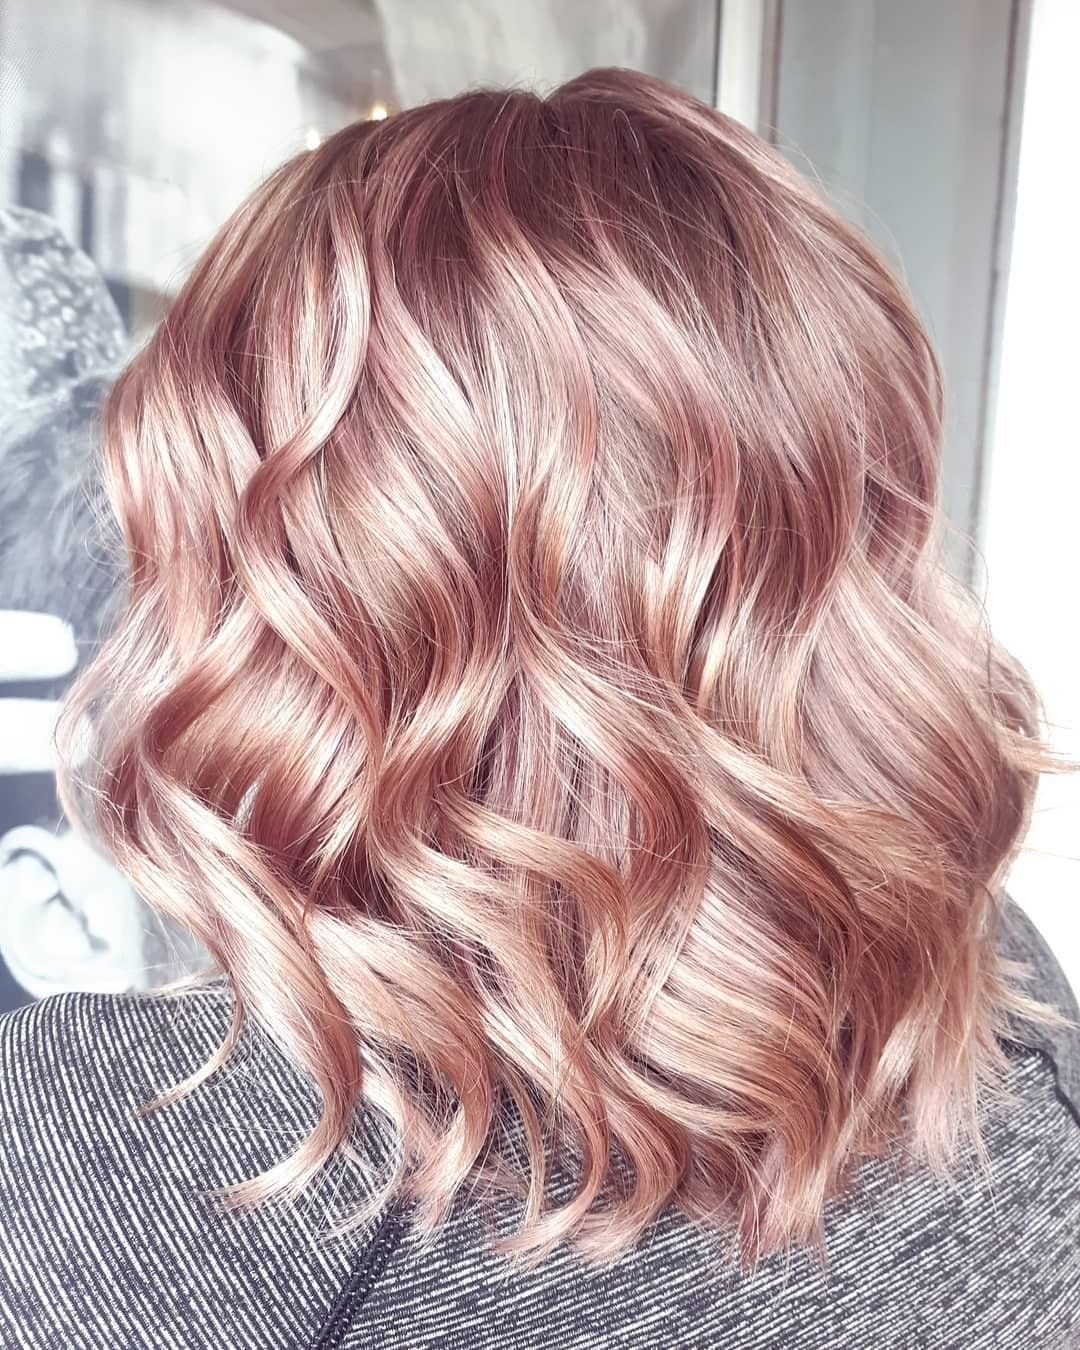 112 medium rose gold hairstyles will inspire you in 112112   Page 12 ...